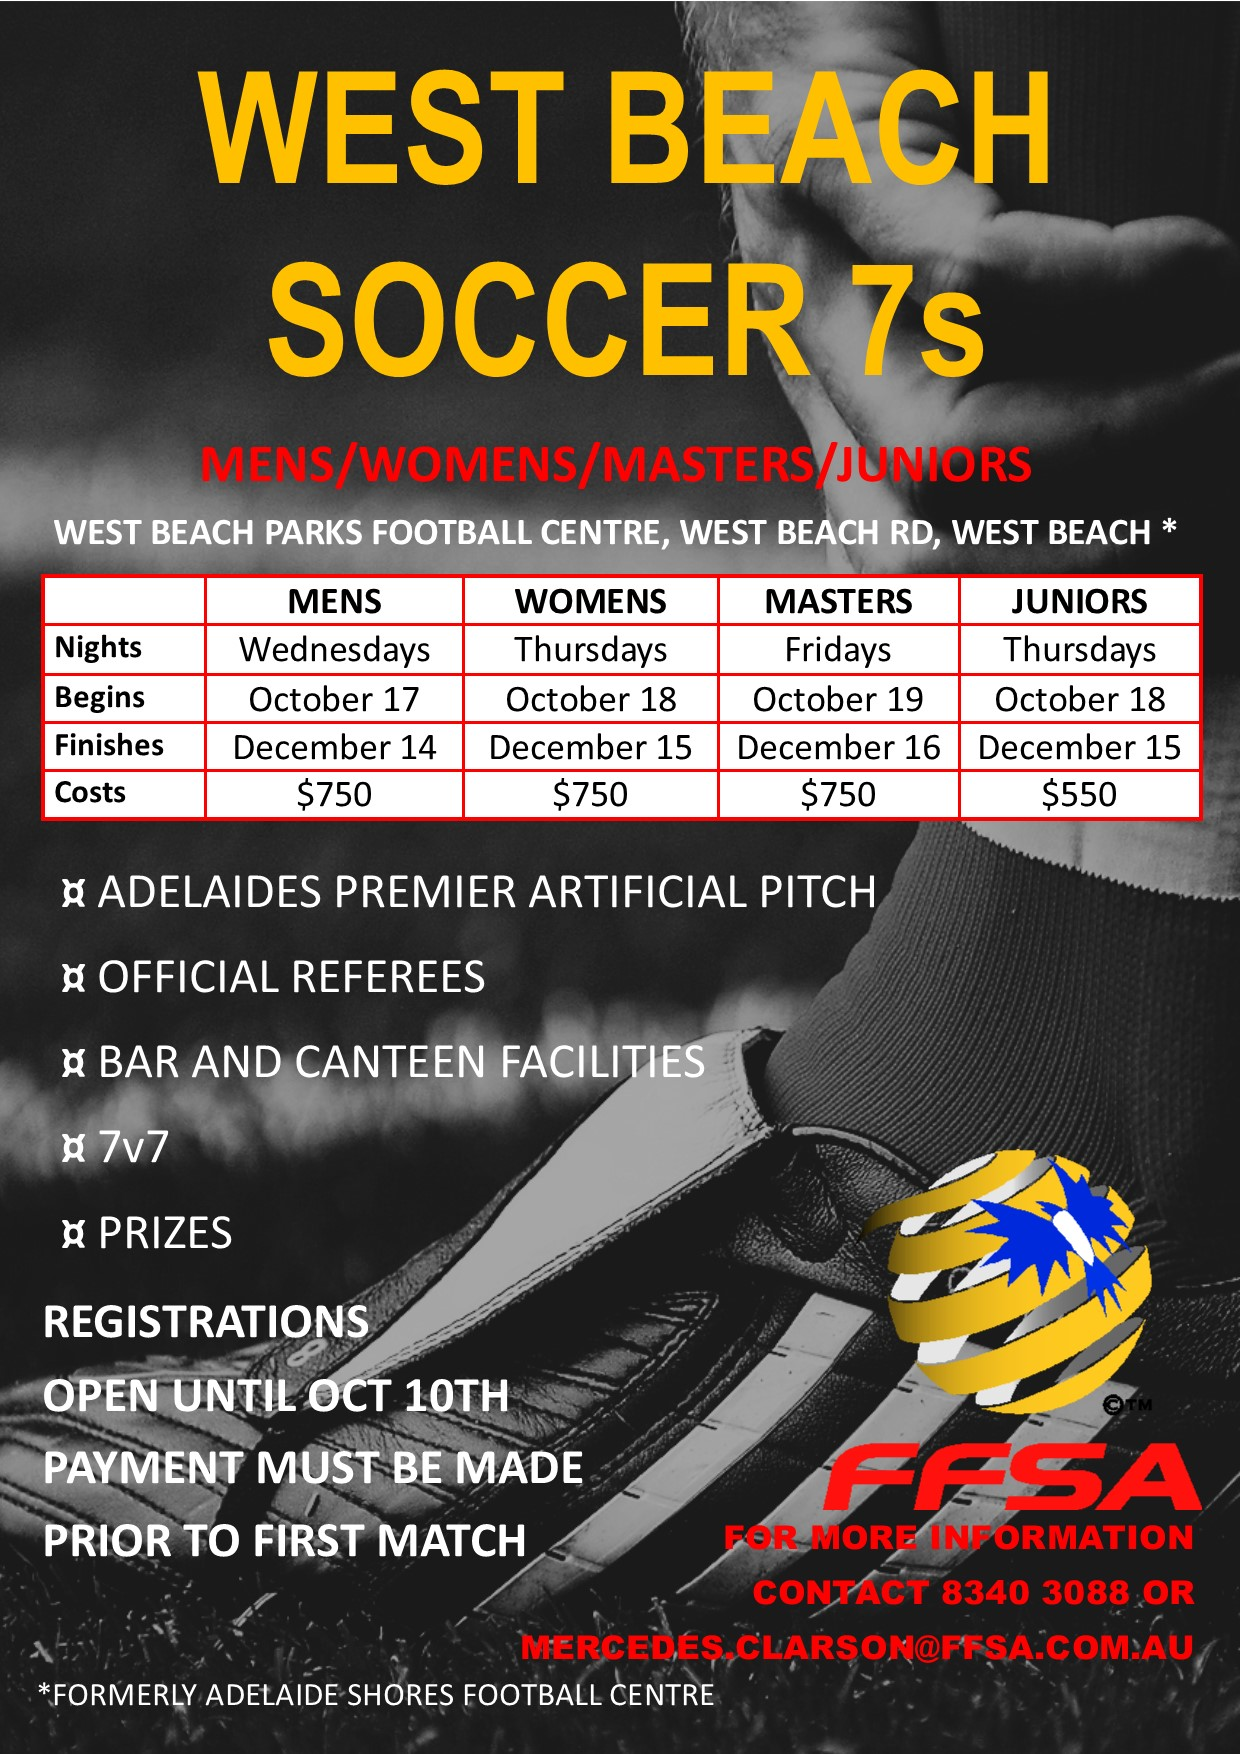 West Beach Soccer 7s Flyer 2018